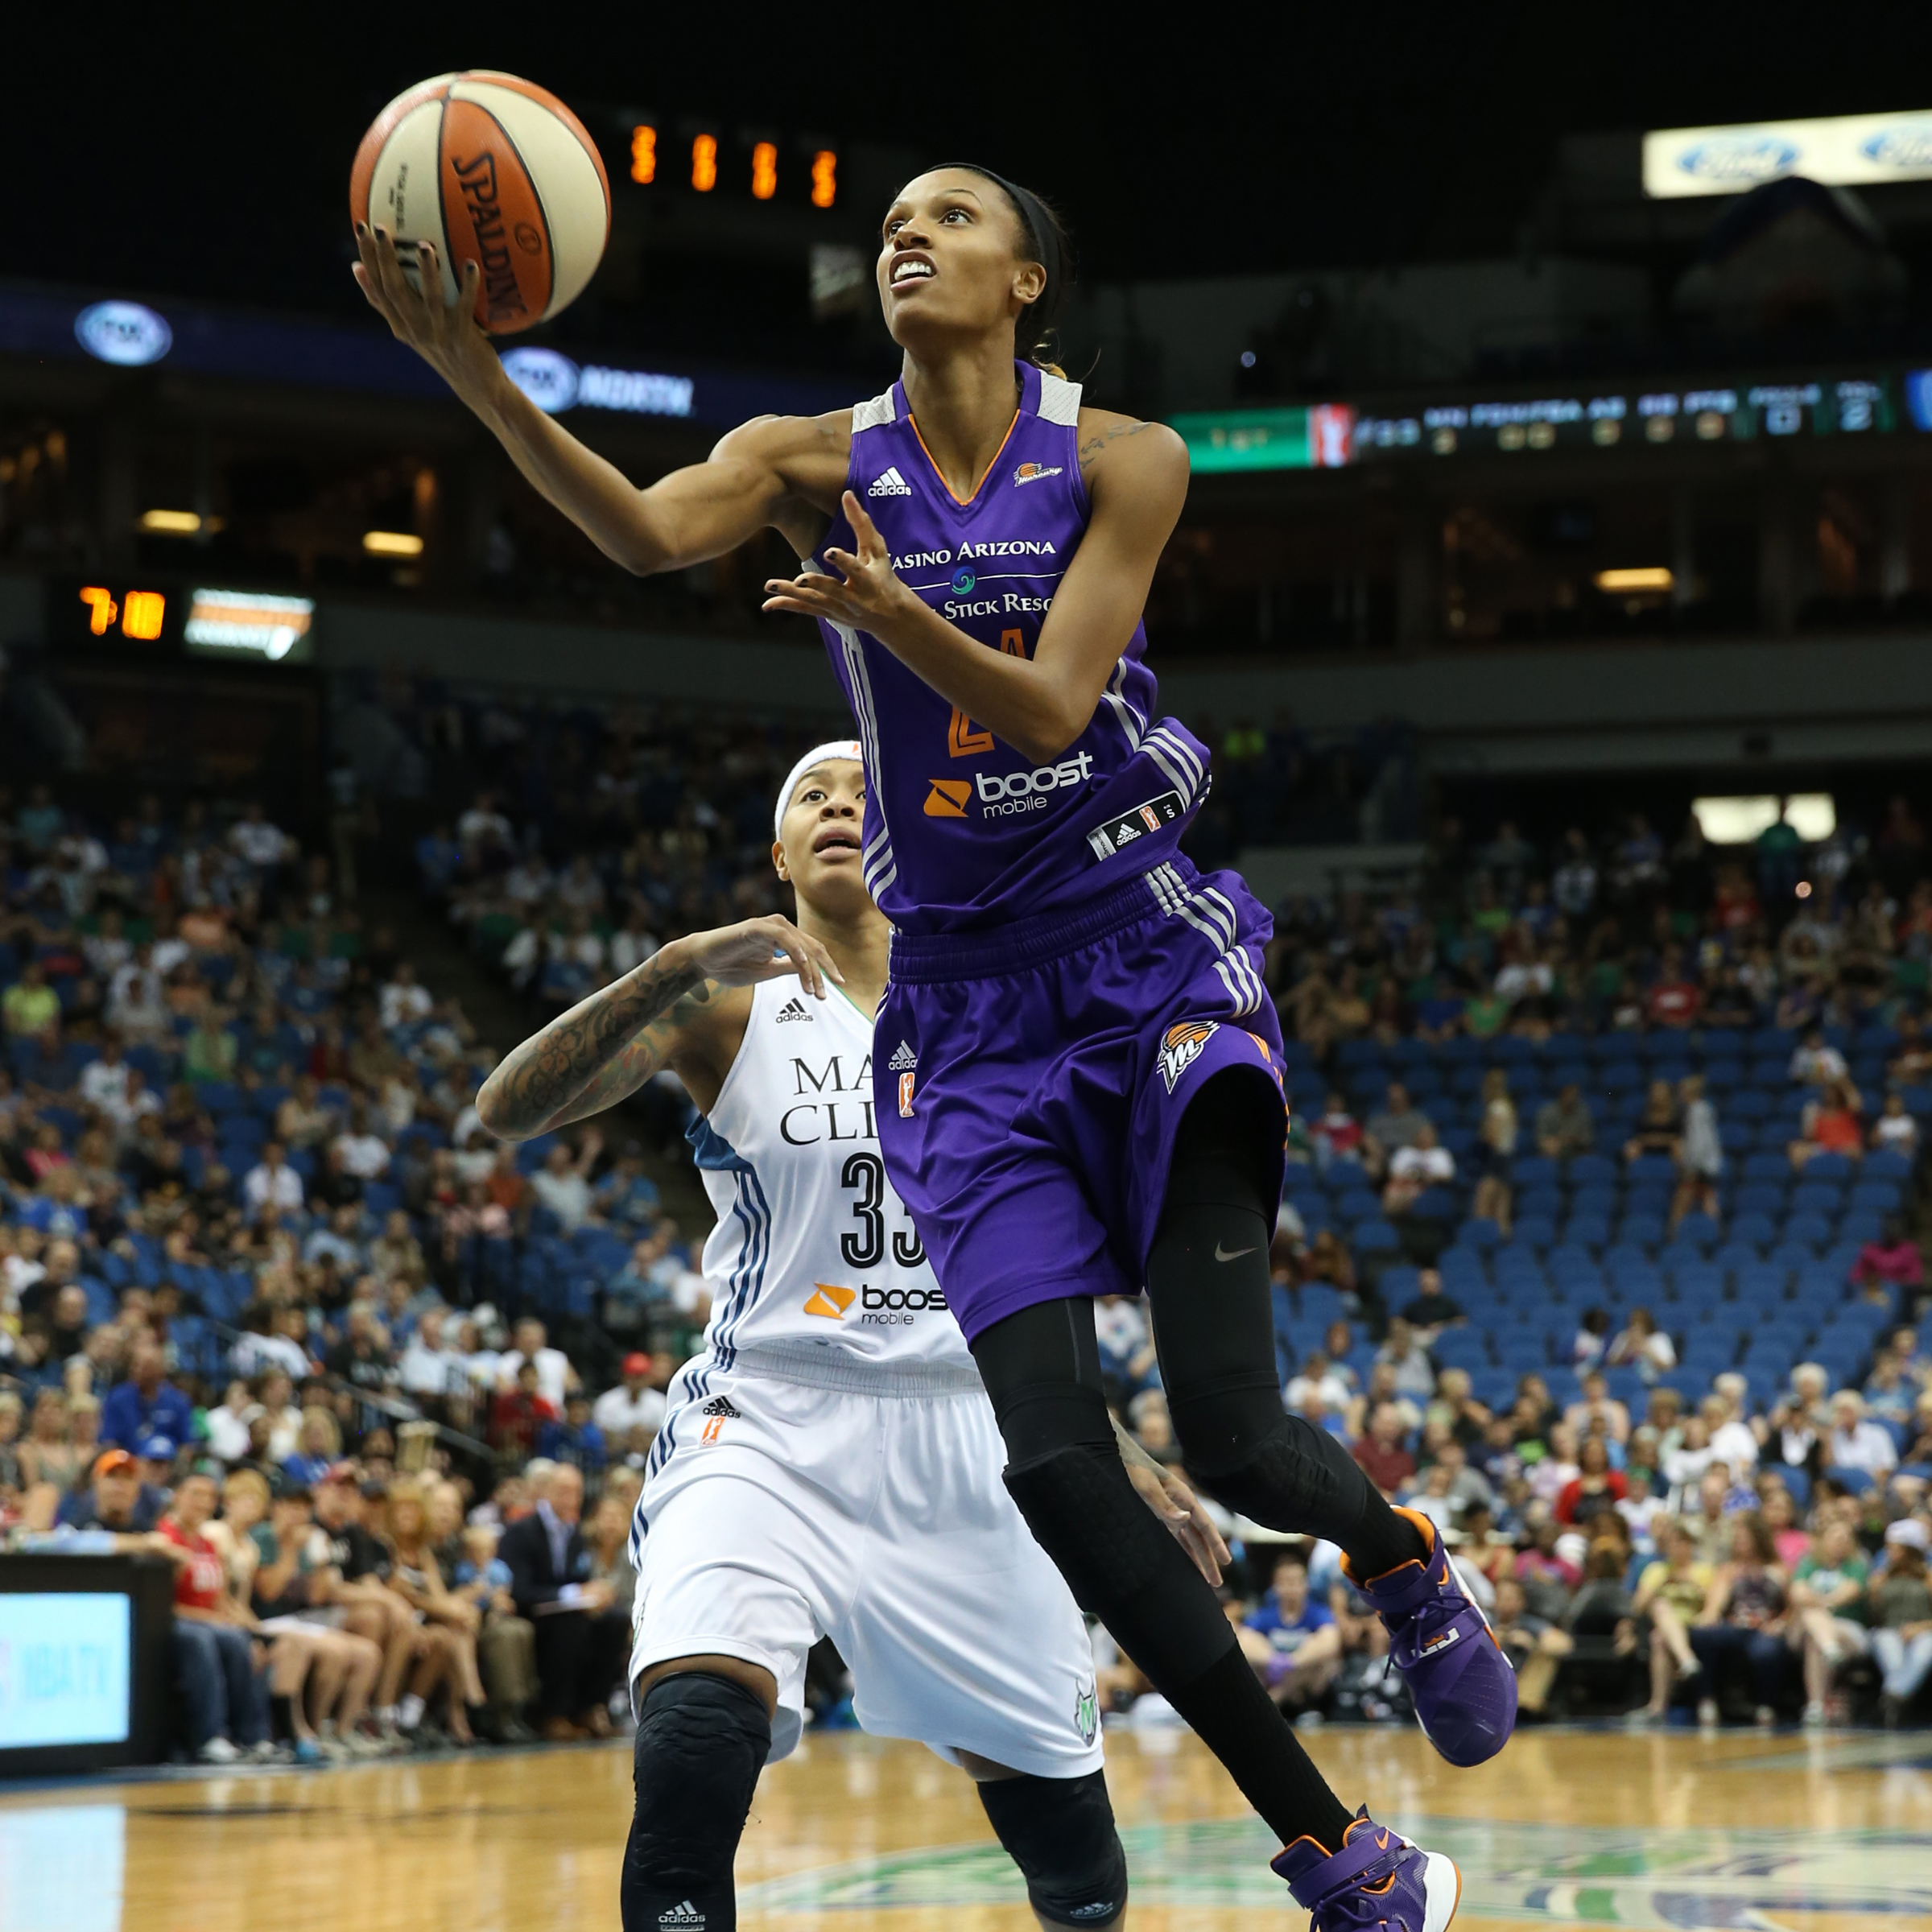 Mercury forward DeWanna Bonner led Phoenix scoring a team-high 18 points while adding seven rebounds and four assists.